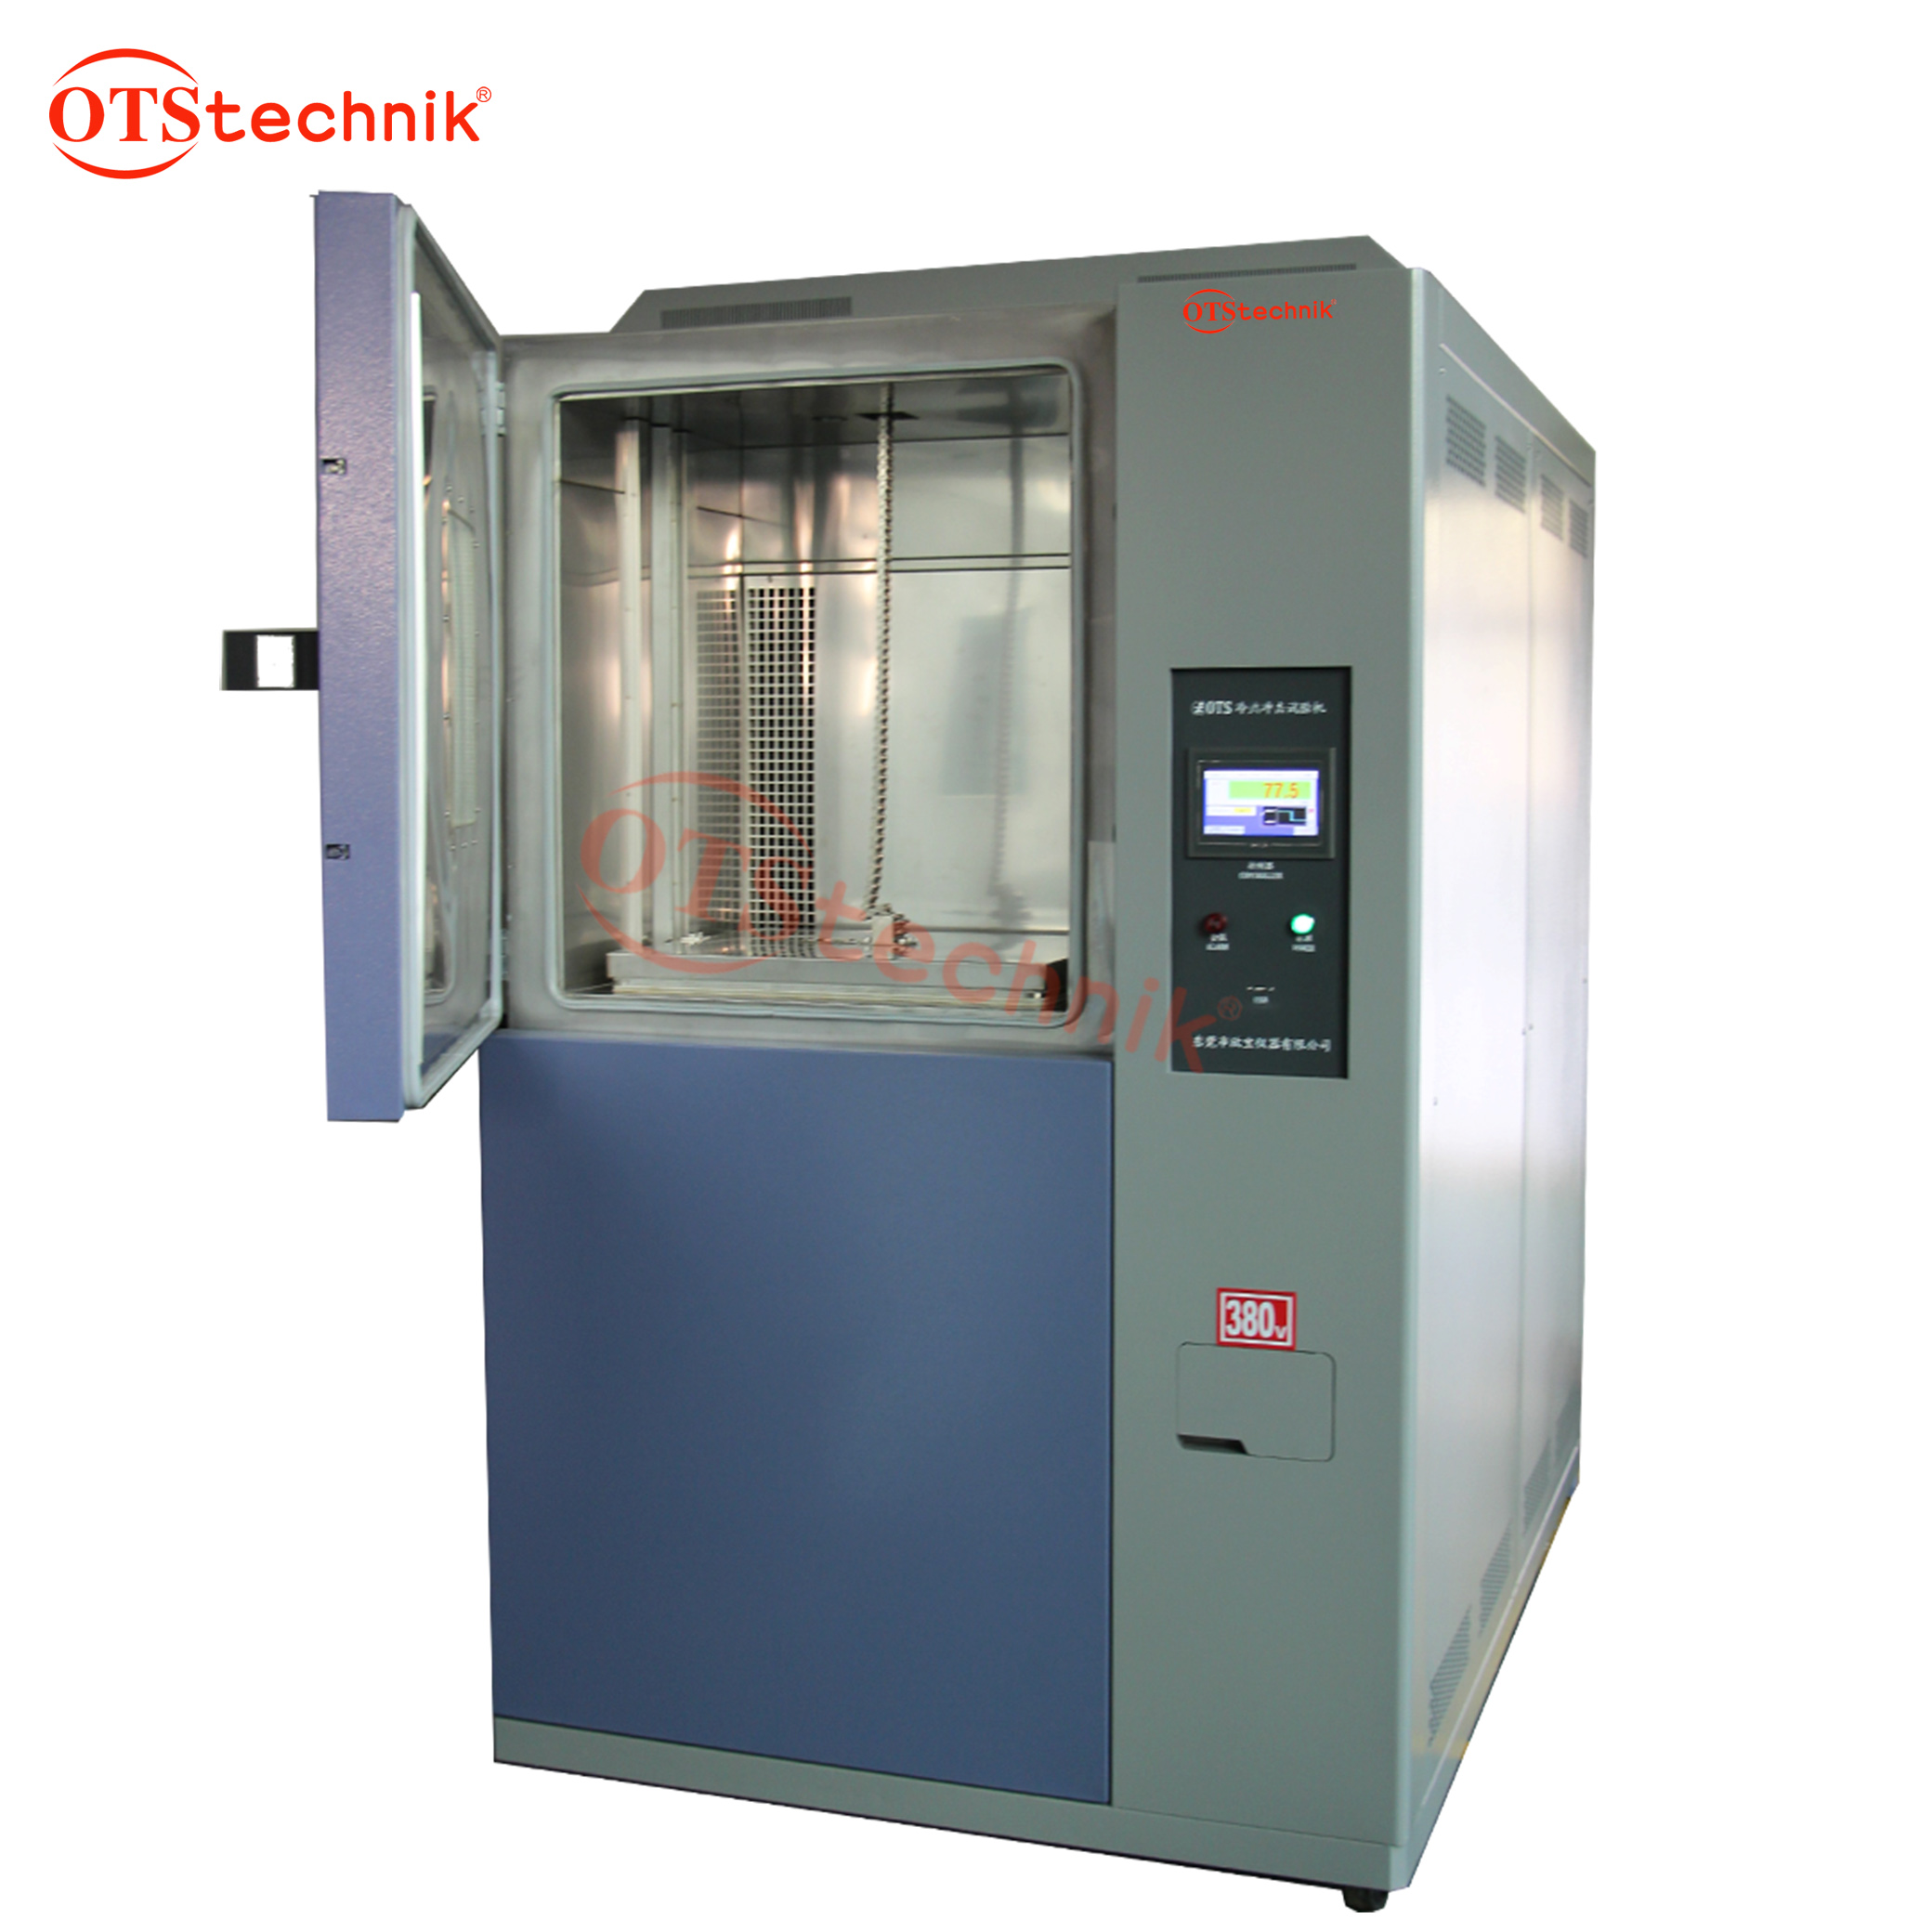 Two-box thermal shock test chamber